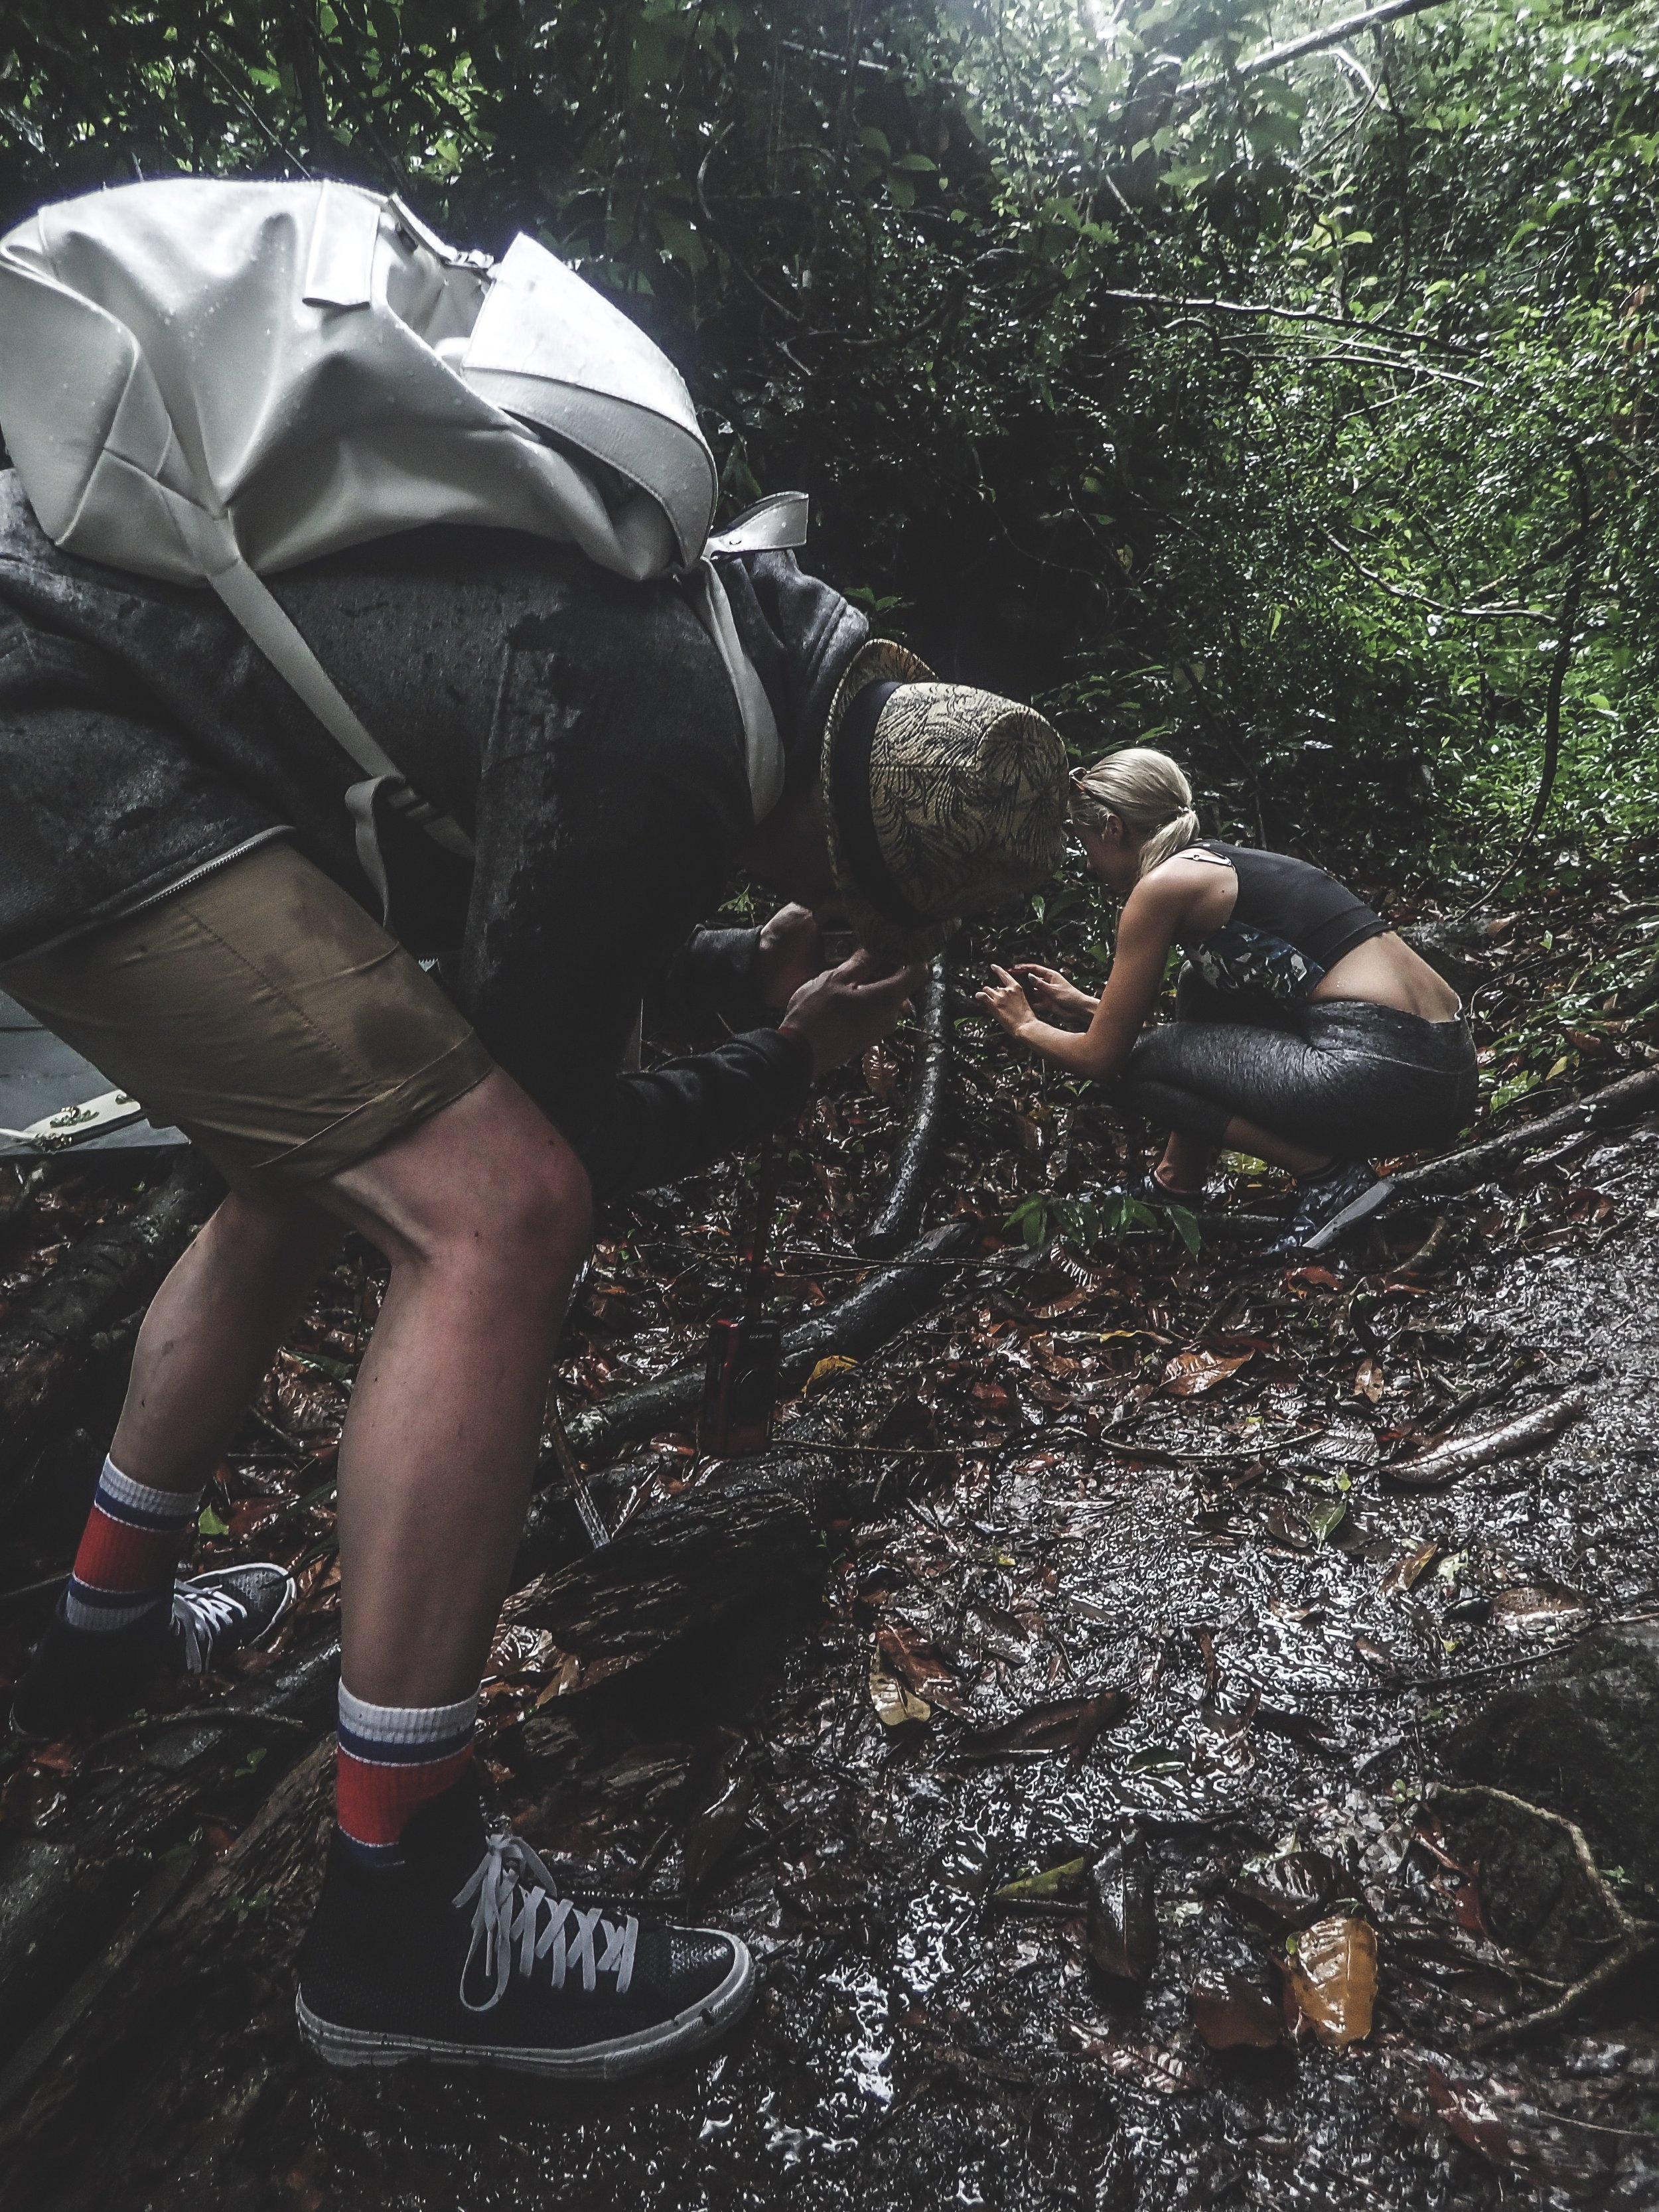 Choosing the Right Hiking Boot Trip Trekking Walking Weatherproof Breathable Trip Adventure Converse Chuck Taylor Antigua Rainforest Olympus JosieLdn FashionMumblr